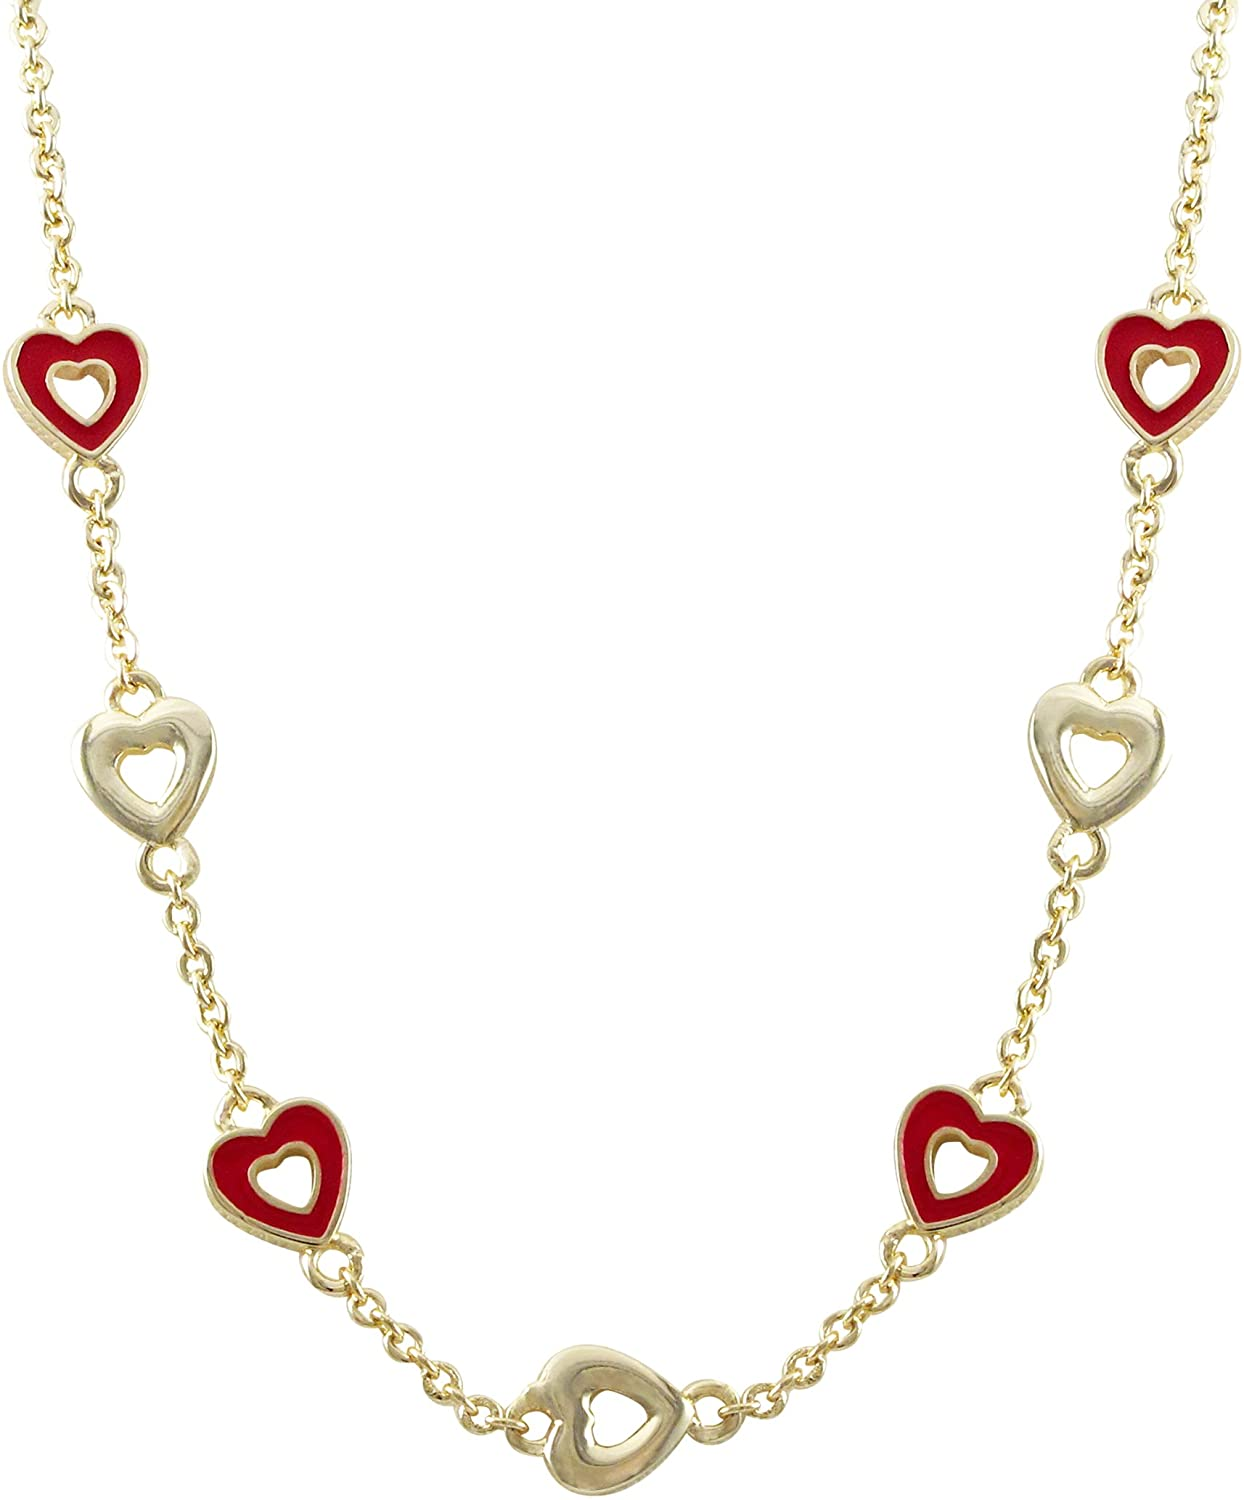 Ivy and Max Gold Finish Red Enamel Finish Open Hearts Children's Necklace, 14